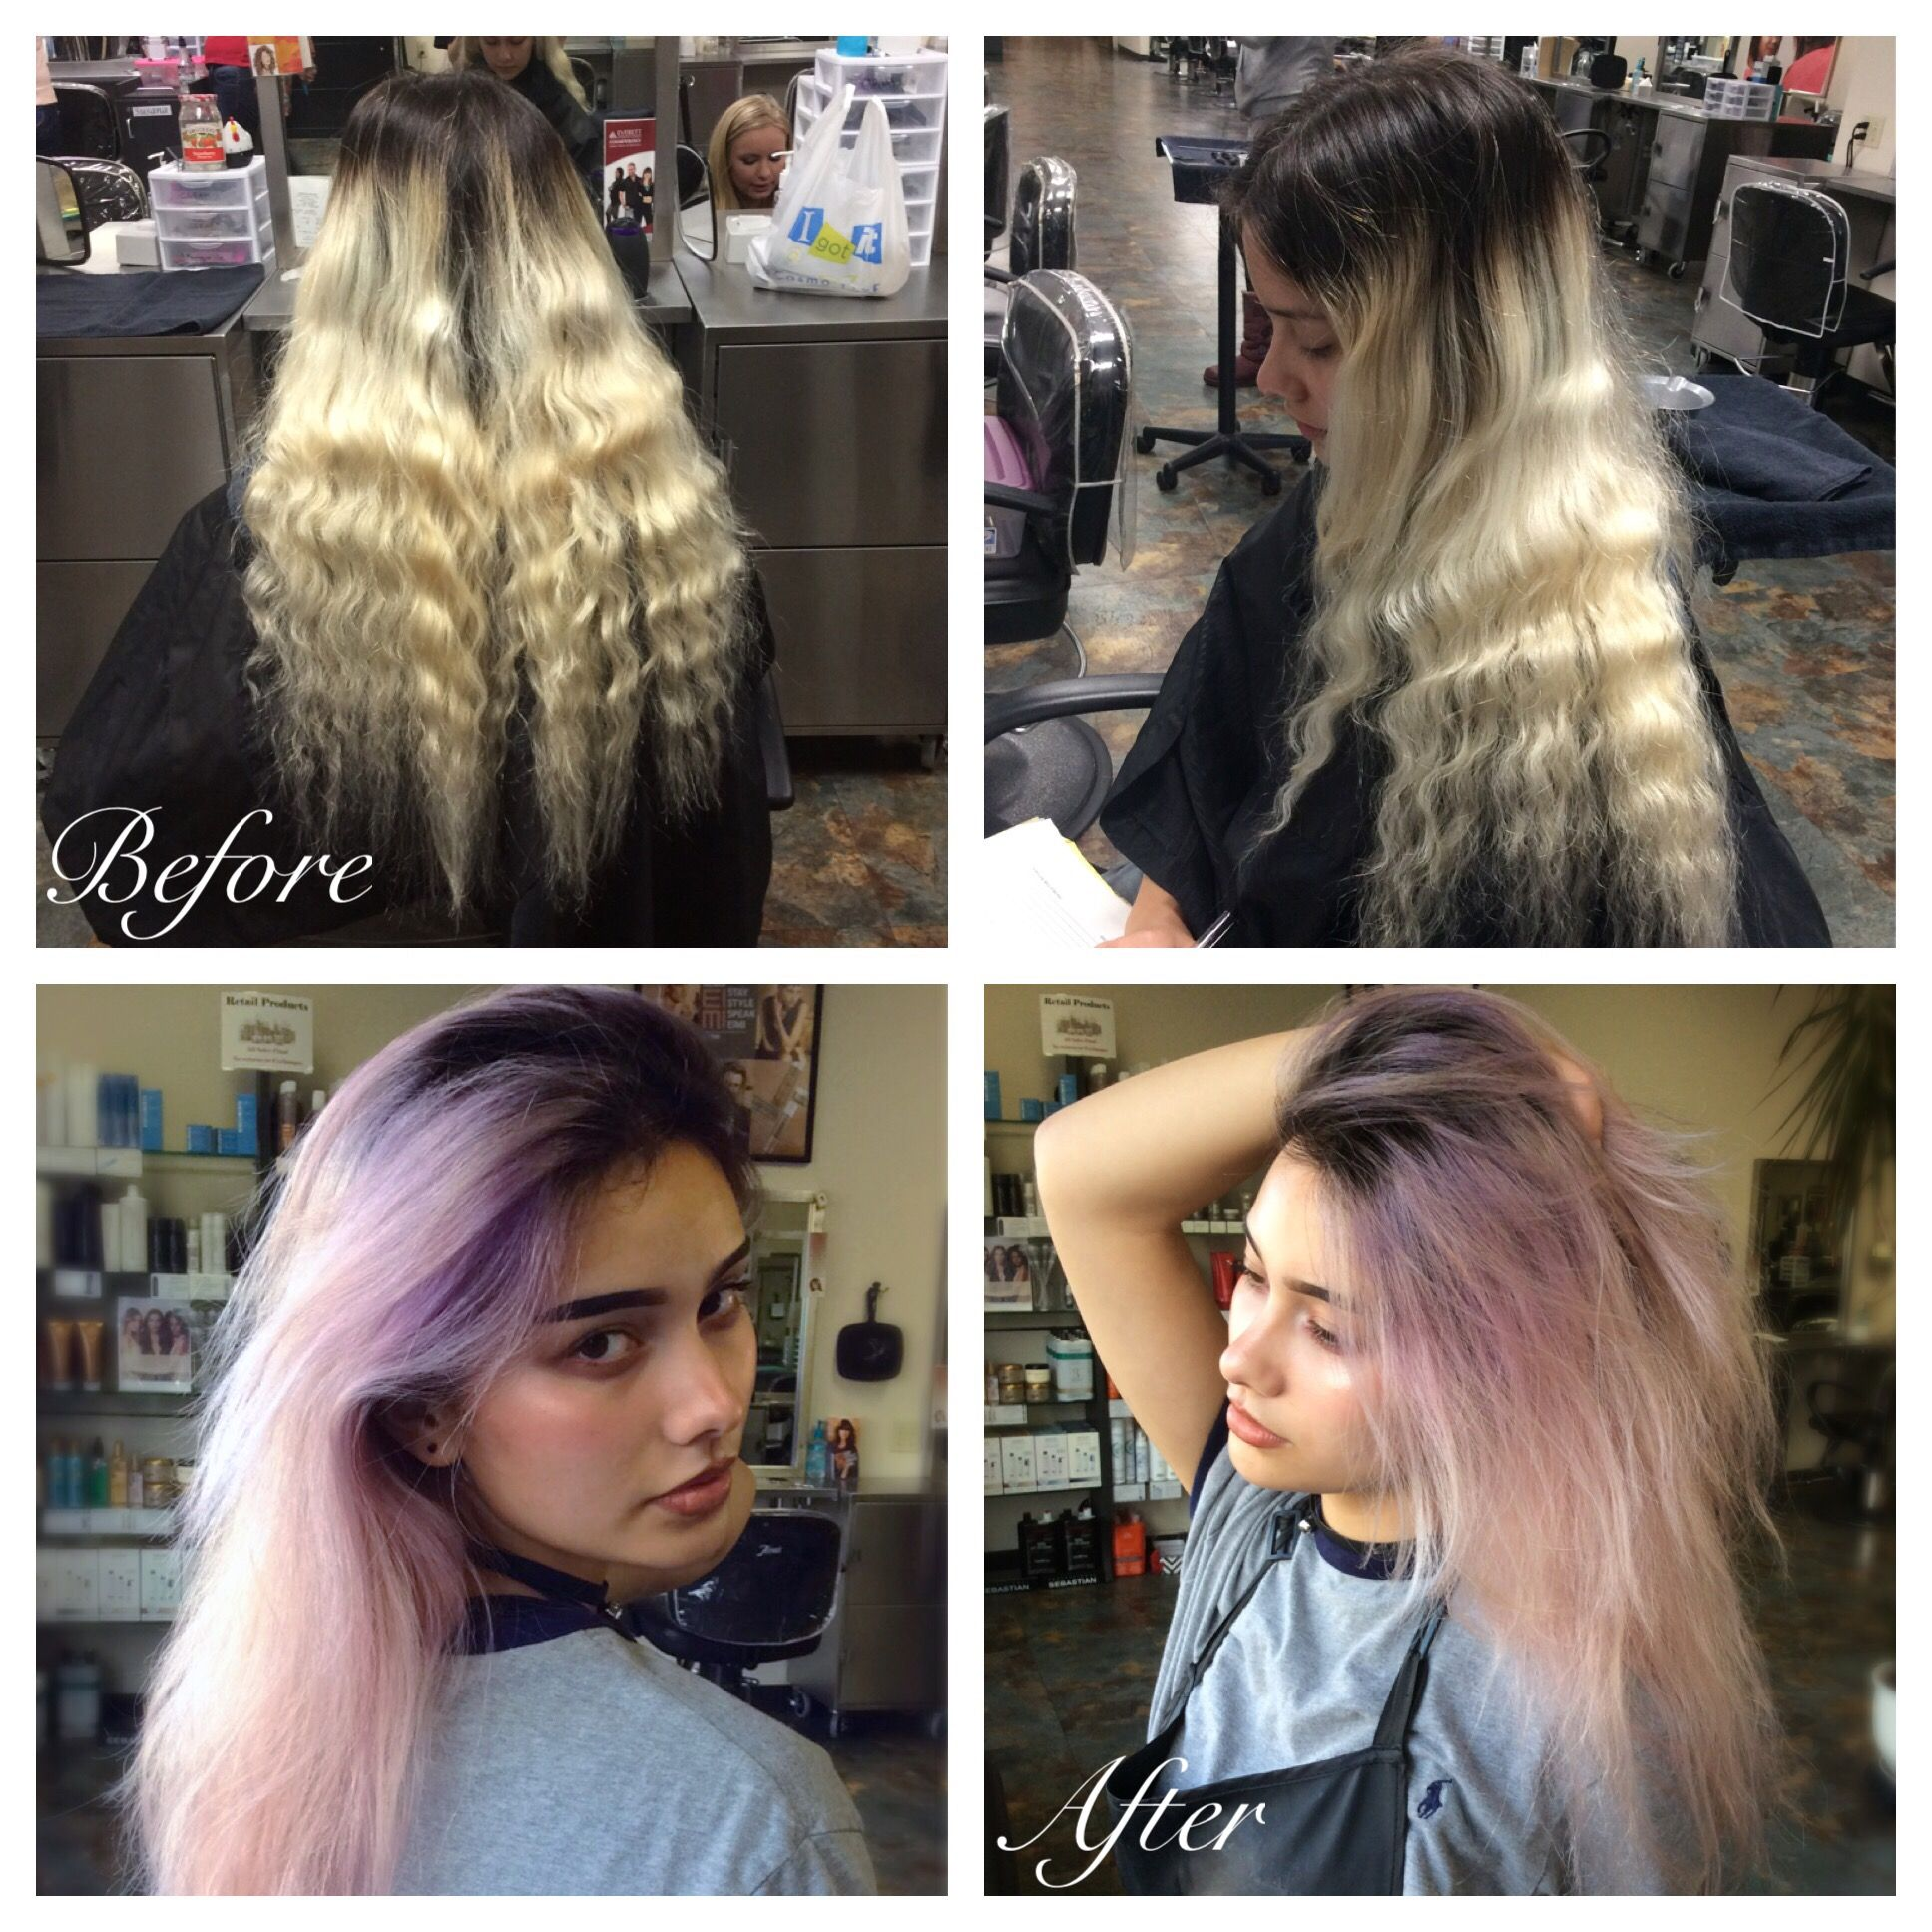 Using Blondor With 30 Volume Developer Brought Up Blonde Balayage Then Did A Shadow Root With 2 1 With Semi Permanent Color Blonde Balayage Hair Hair Styles